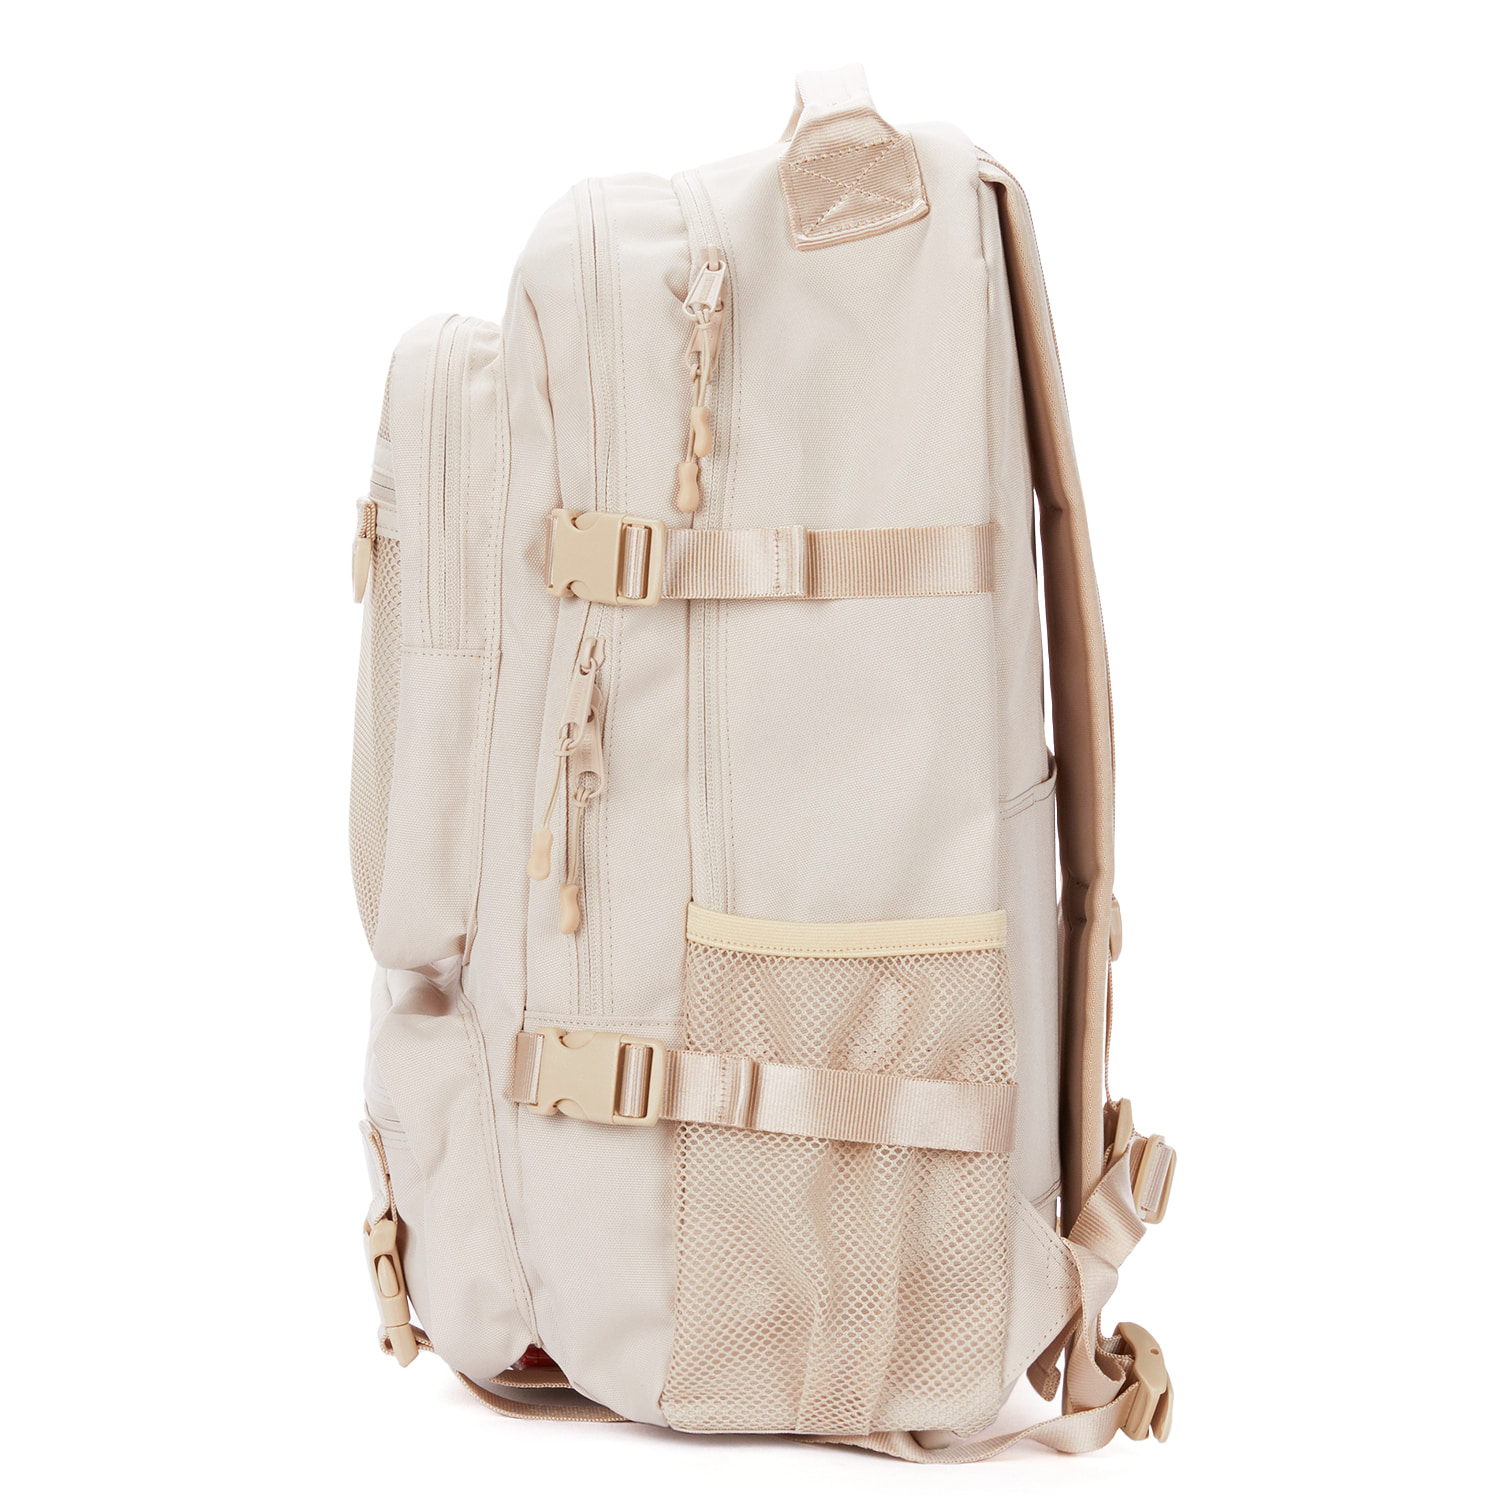 PREMIER BACKPACK / LIGHT BEIGE